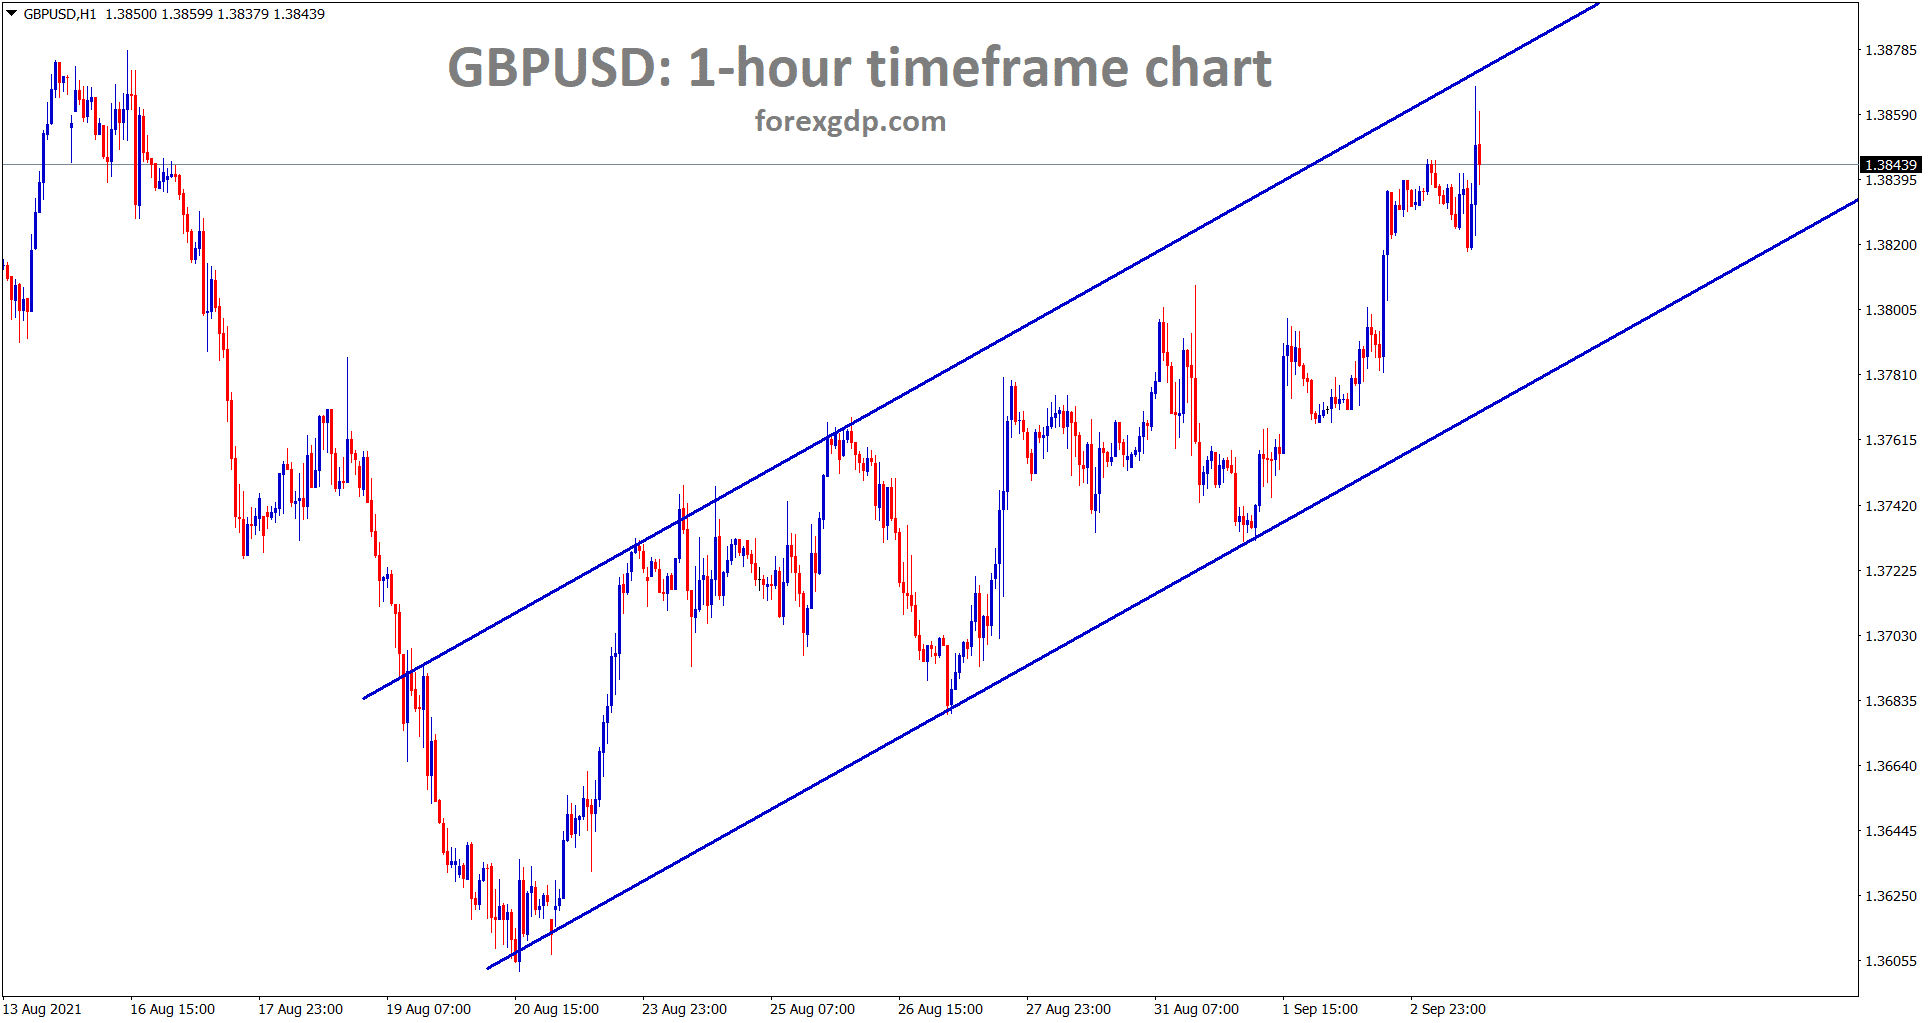 GBPUSD is moving in an Ascending Channel in the 1 hour timeframe chart